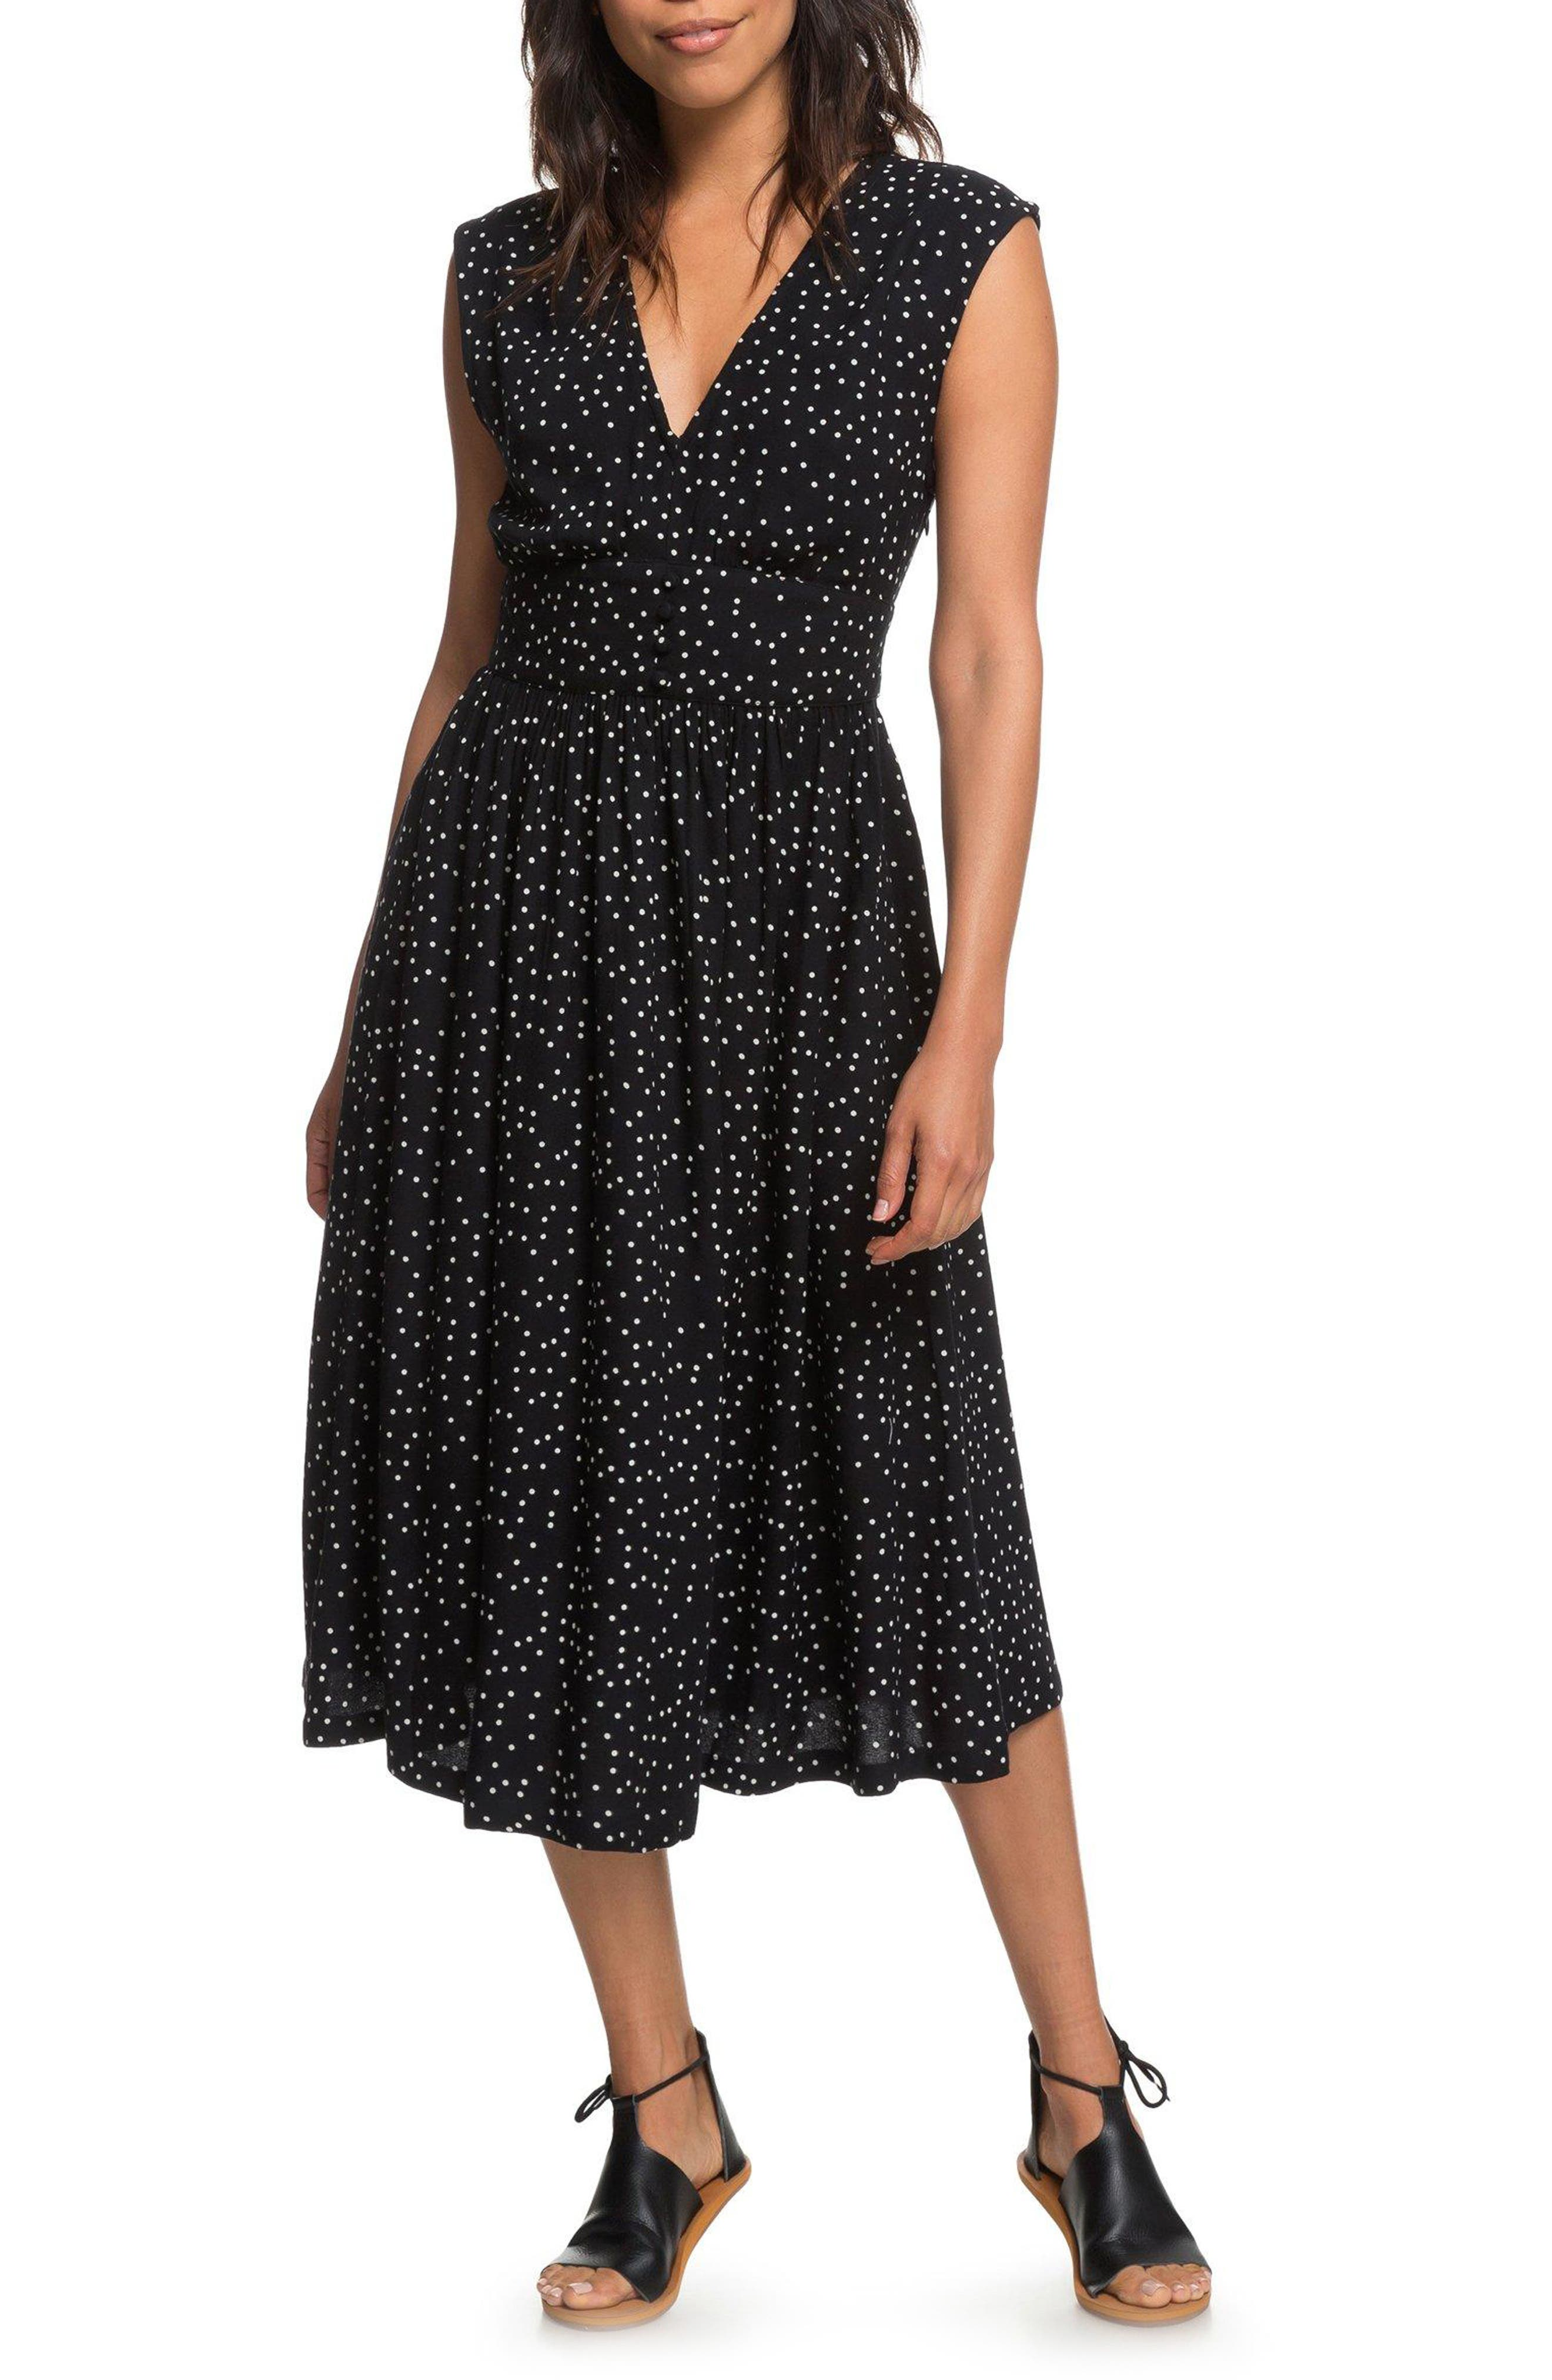 Retro Poetic Polka Dot Dress,                         Main,                         color, 001